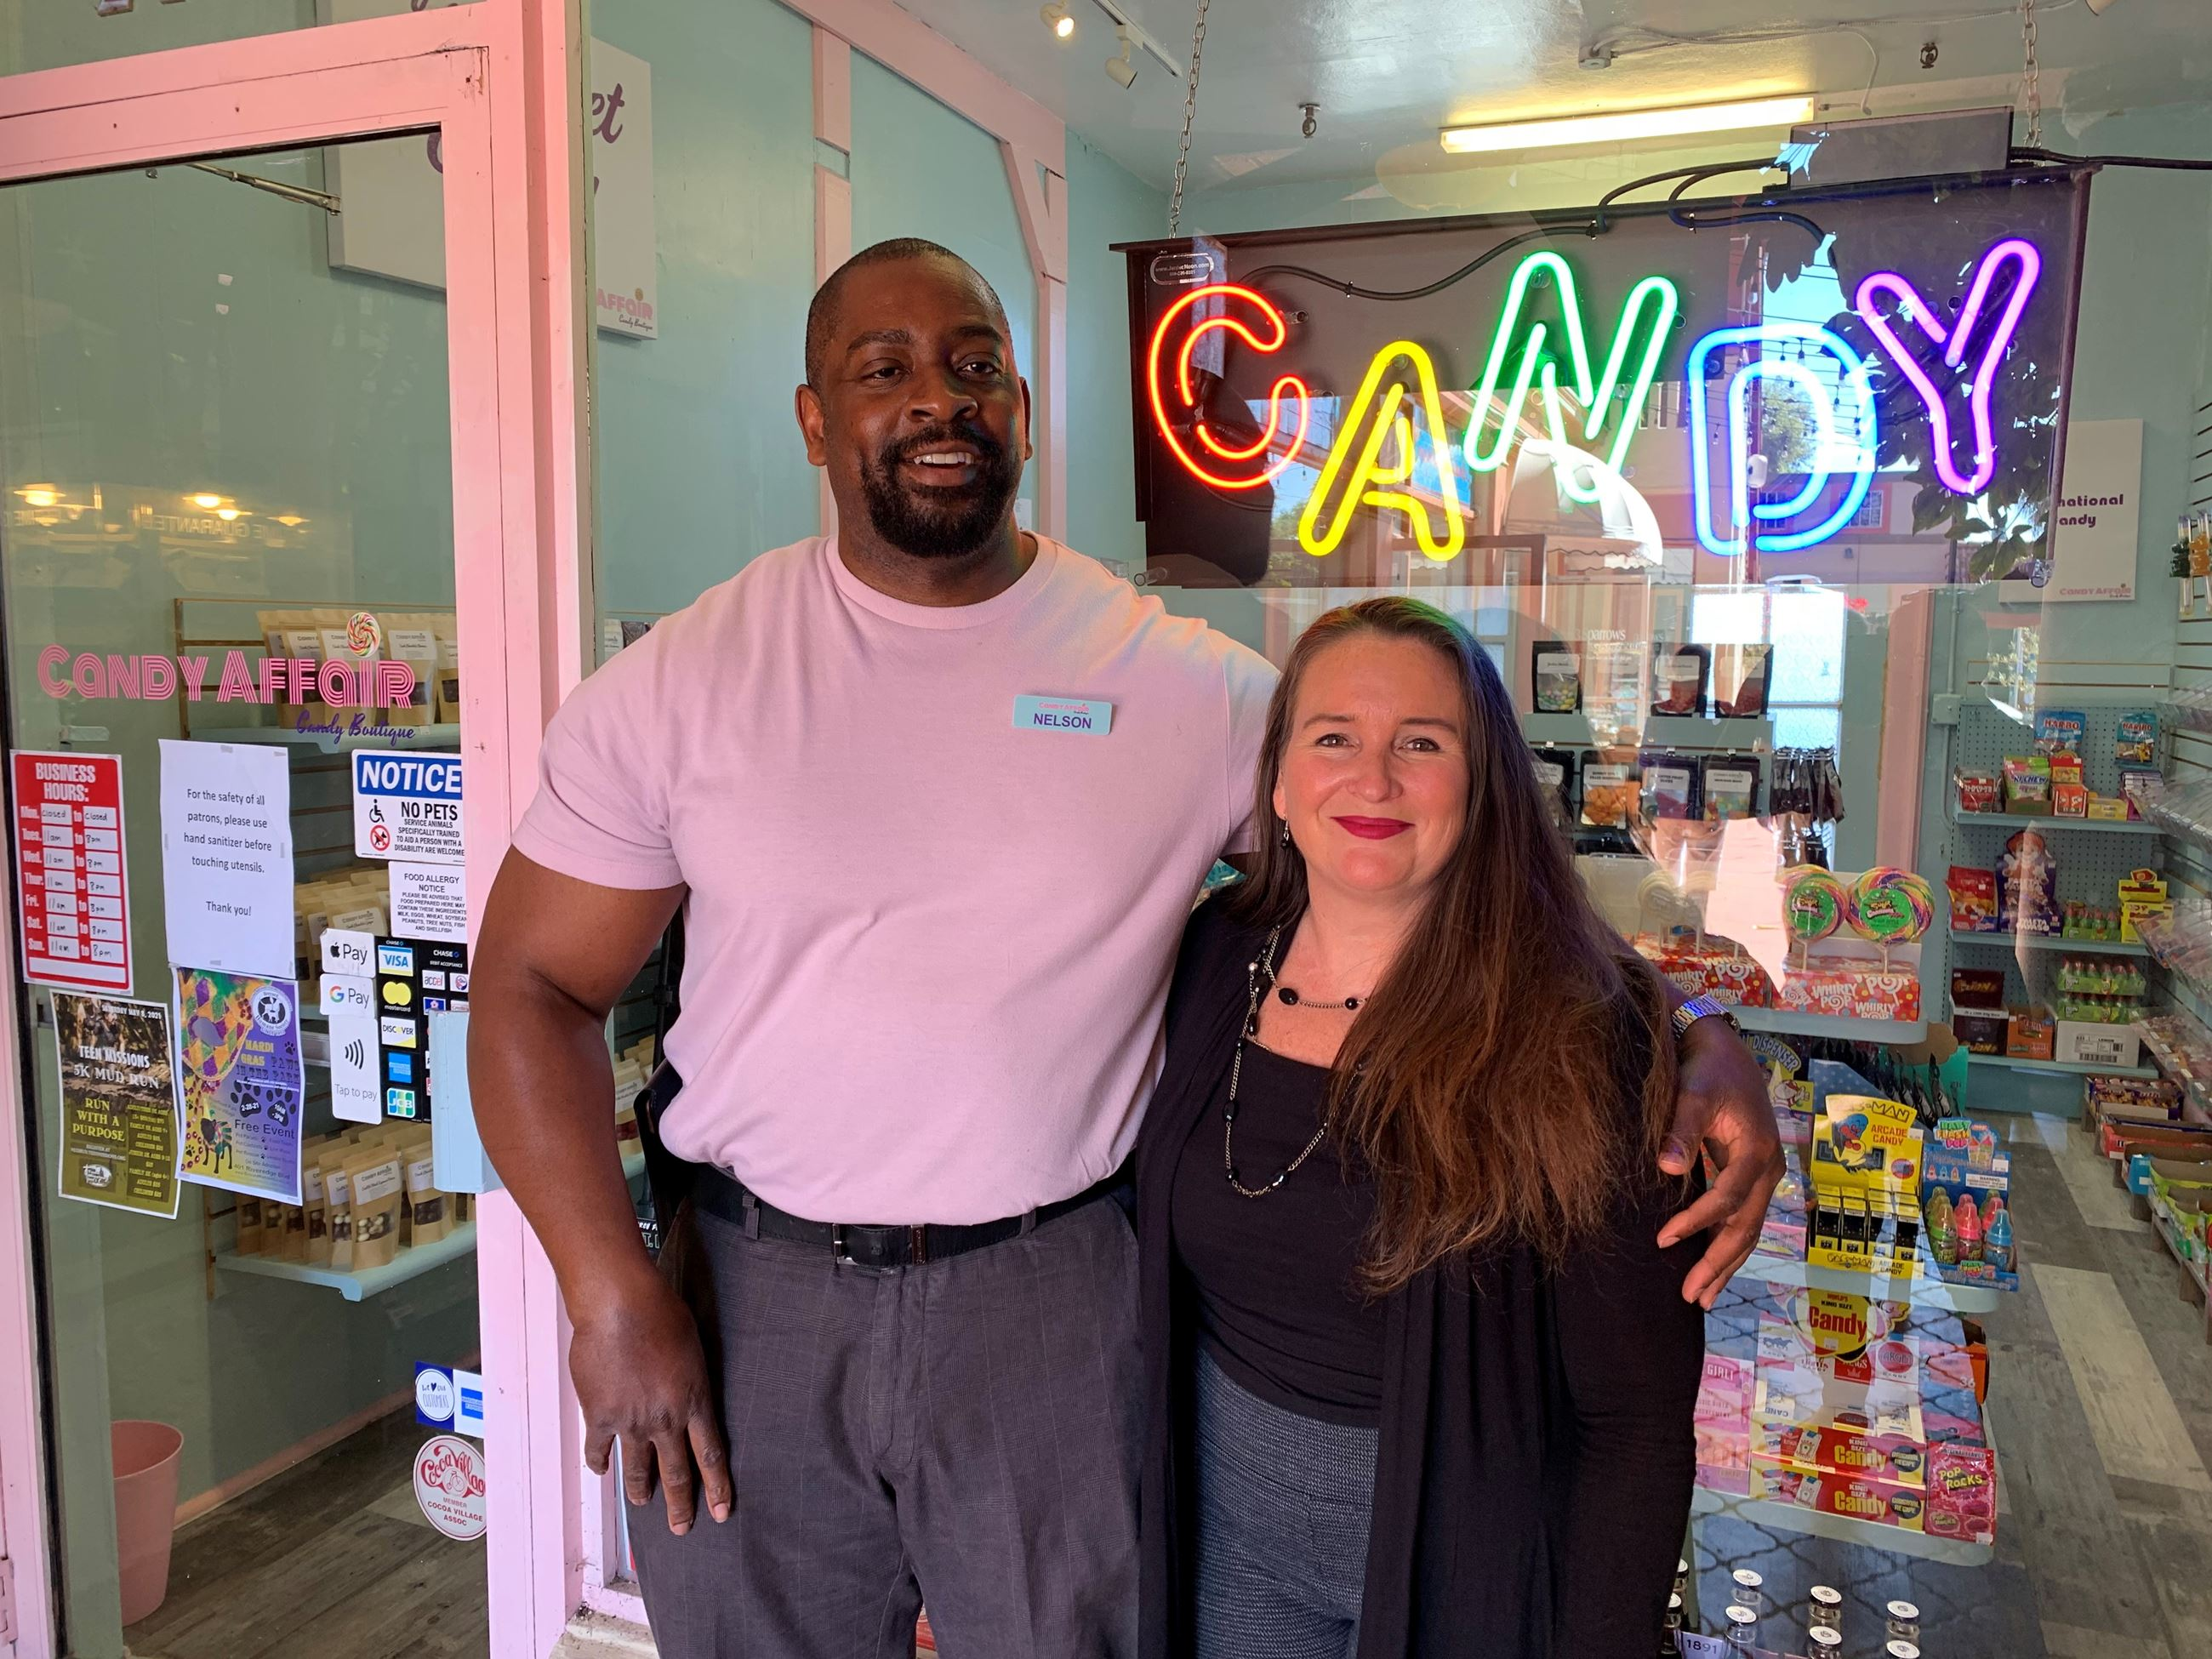 Candy Affair Candy Boutique owners